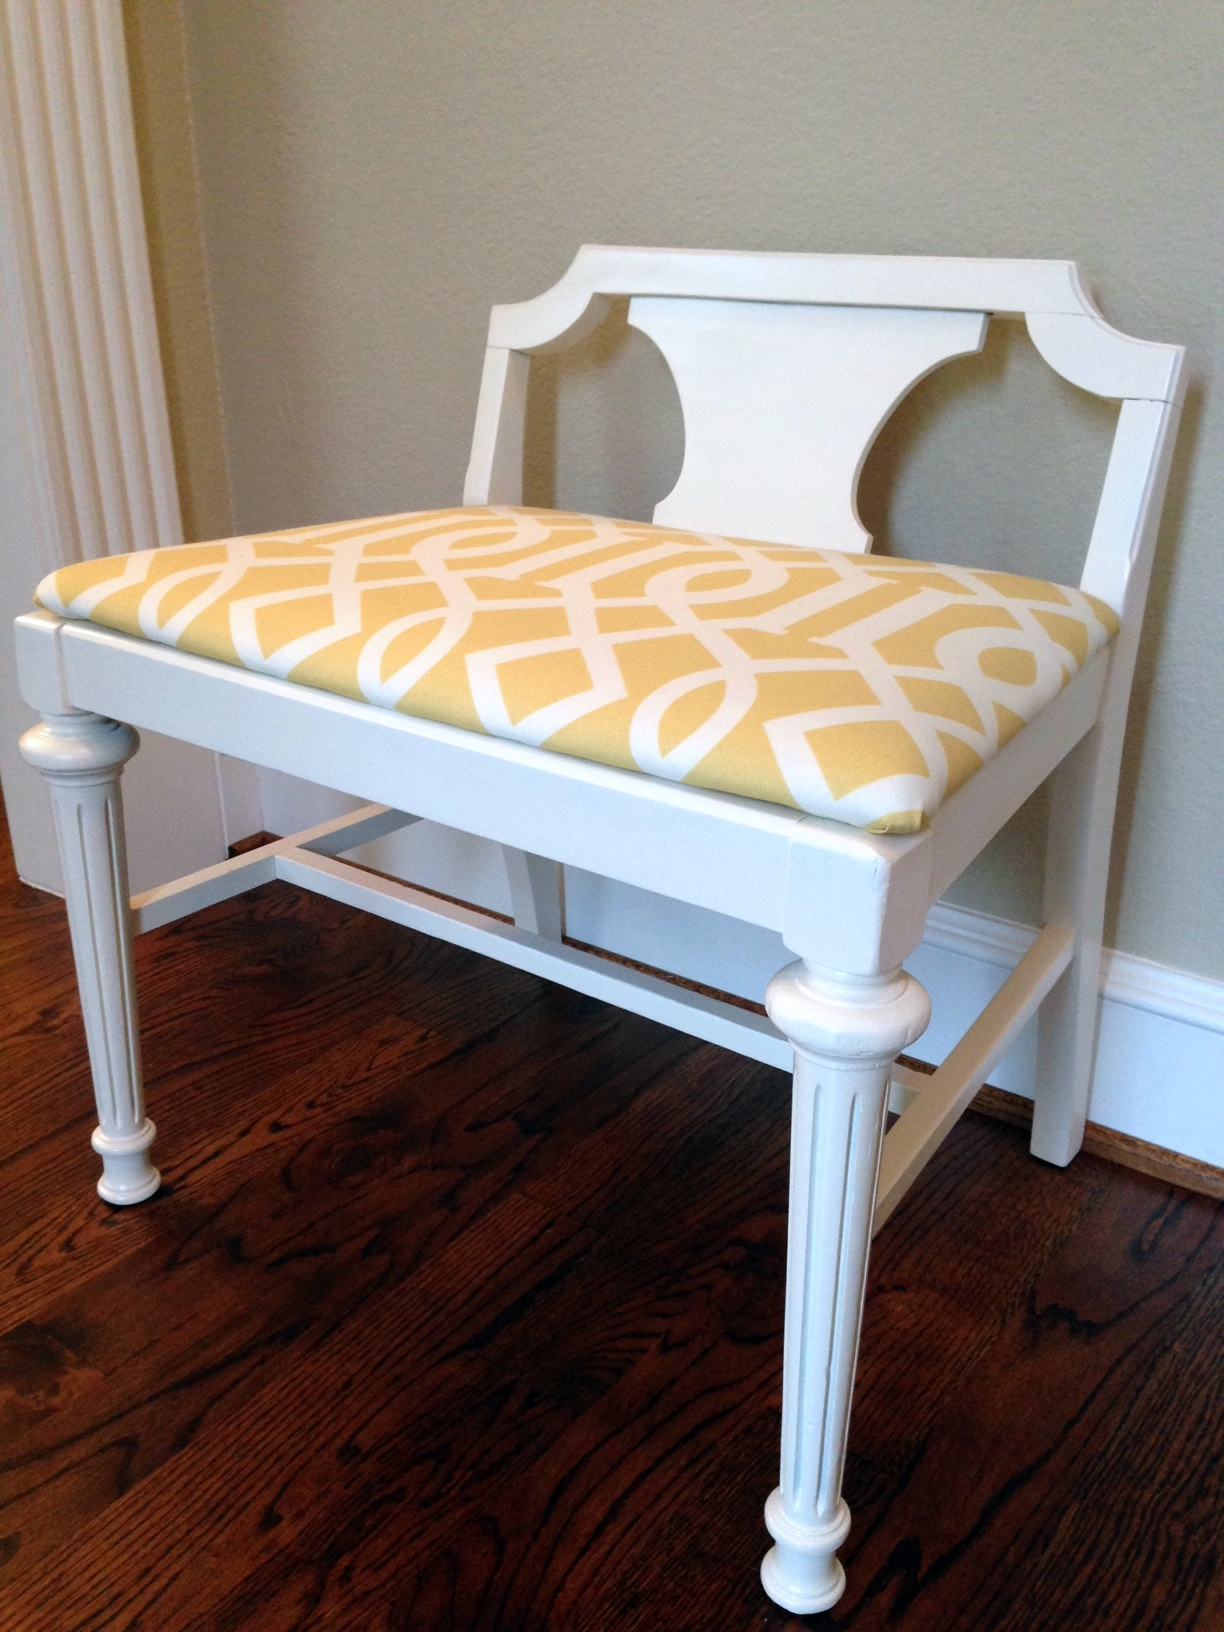 White Vanity Bench Seat More Designs Of Vanity Bench Seat For Bedroom Vanity